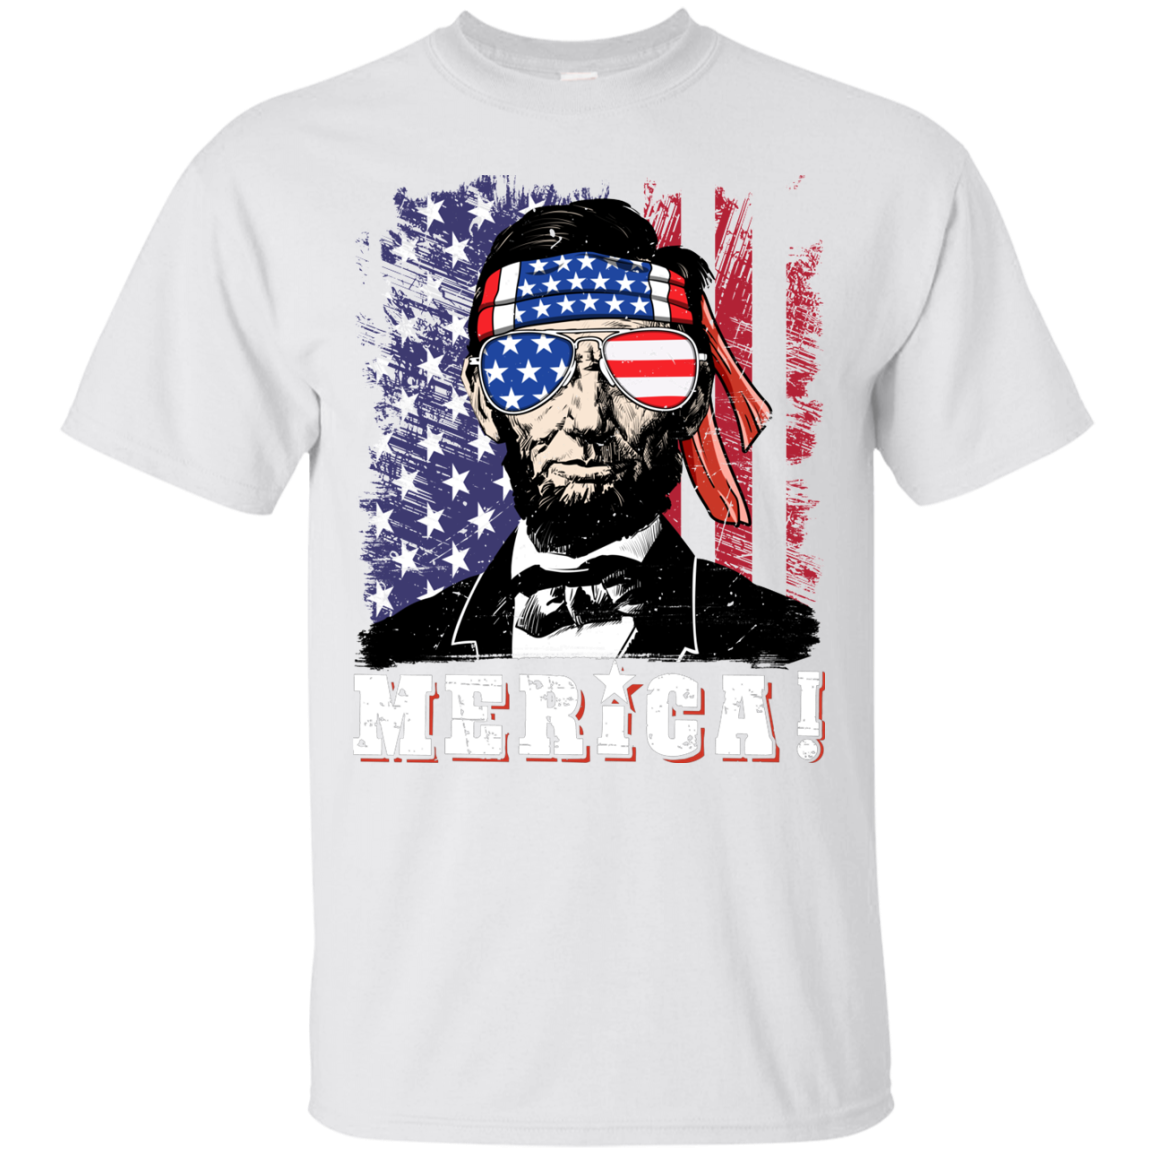 4th of July Shirts for Men Merica Abe Lincoln Gift Men Cotton T Shirt